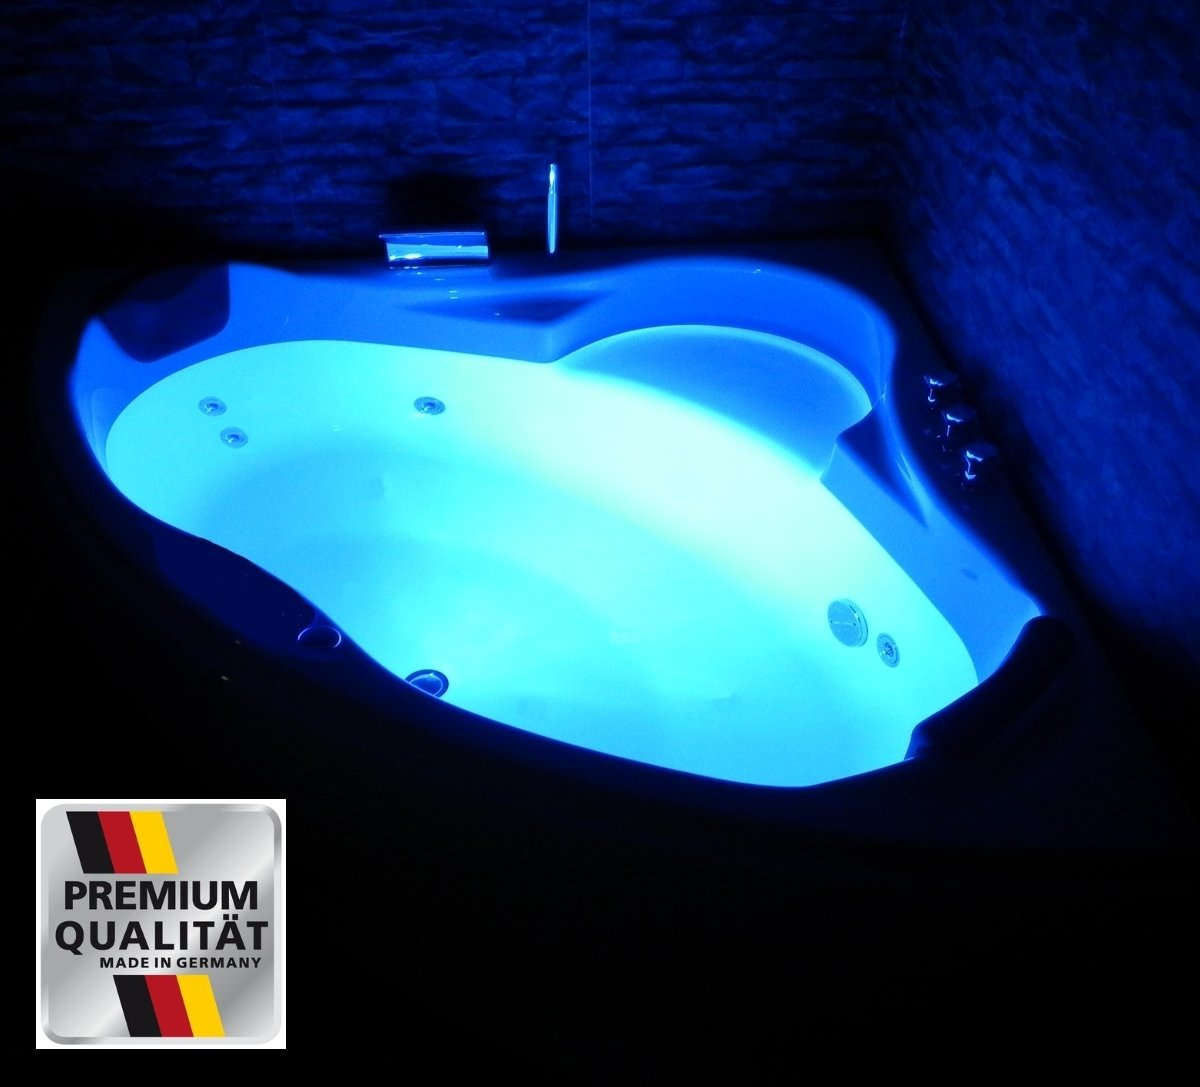 Whirlpool badewanne  Whirlpool Badewanne Paris MADE IN GERMANY mit 8 Massage Düsen + ...